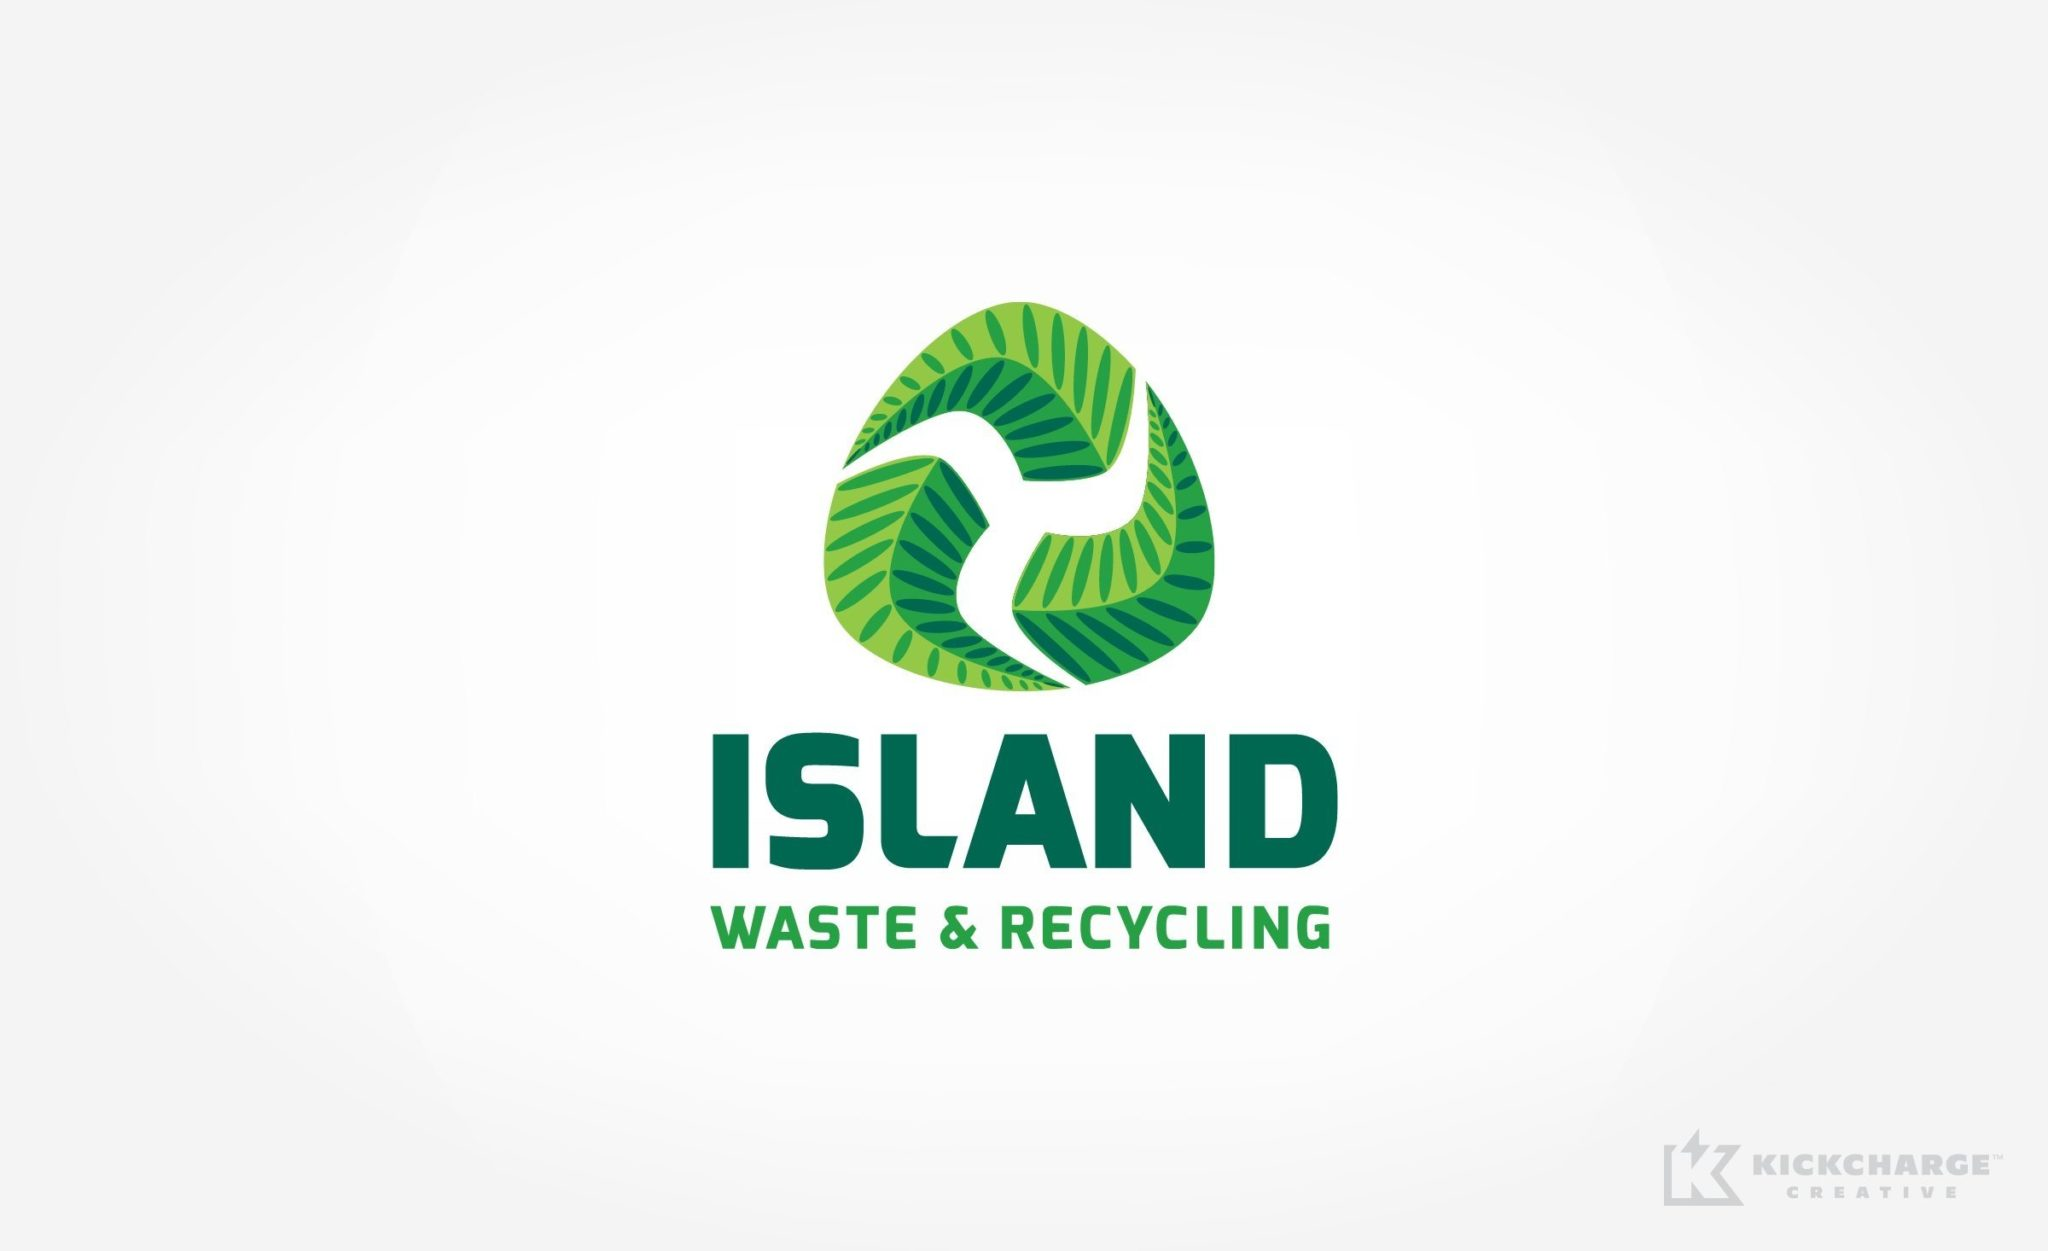 Island Waste & Recycling